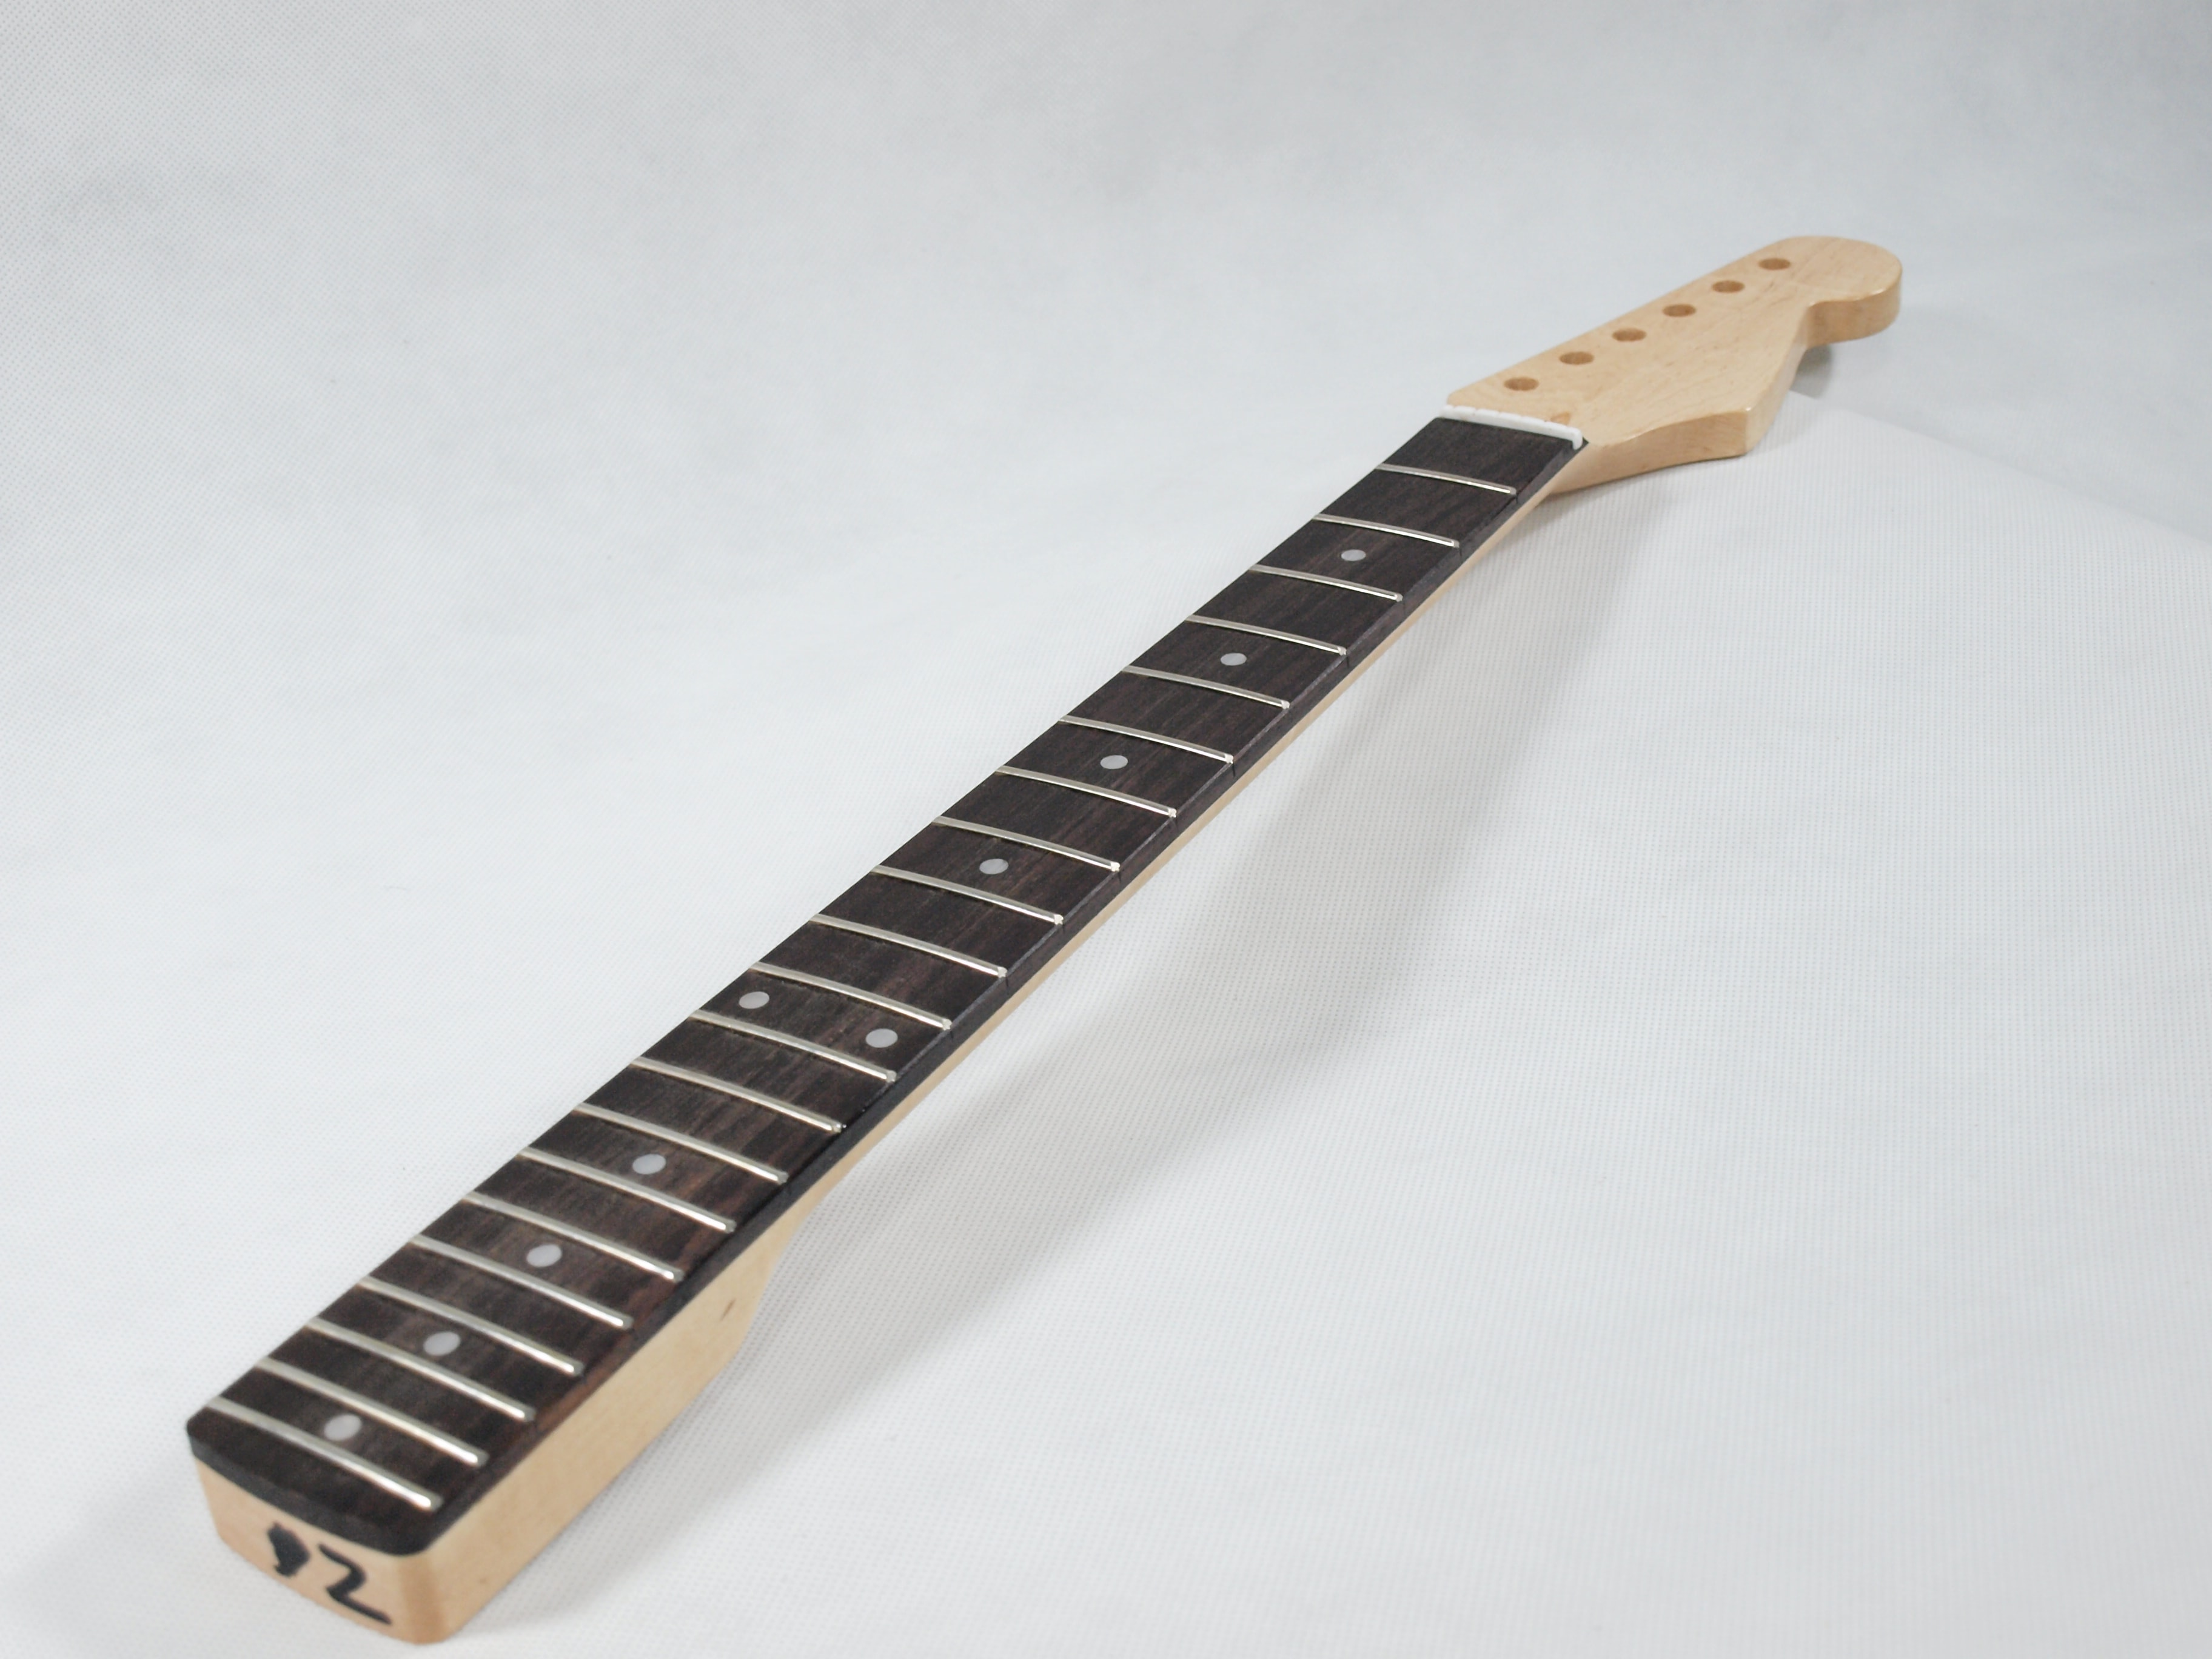 Solo st style diy guitar kit basswood body rosewood fb solo diy guitar kits solutioingenieria Images